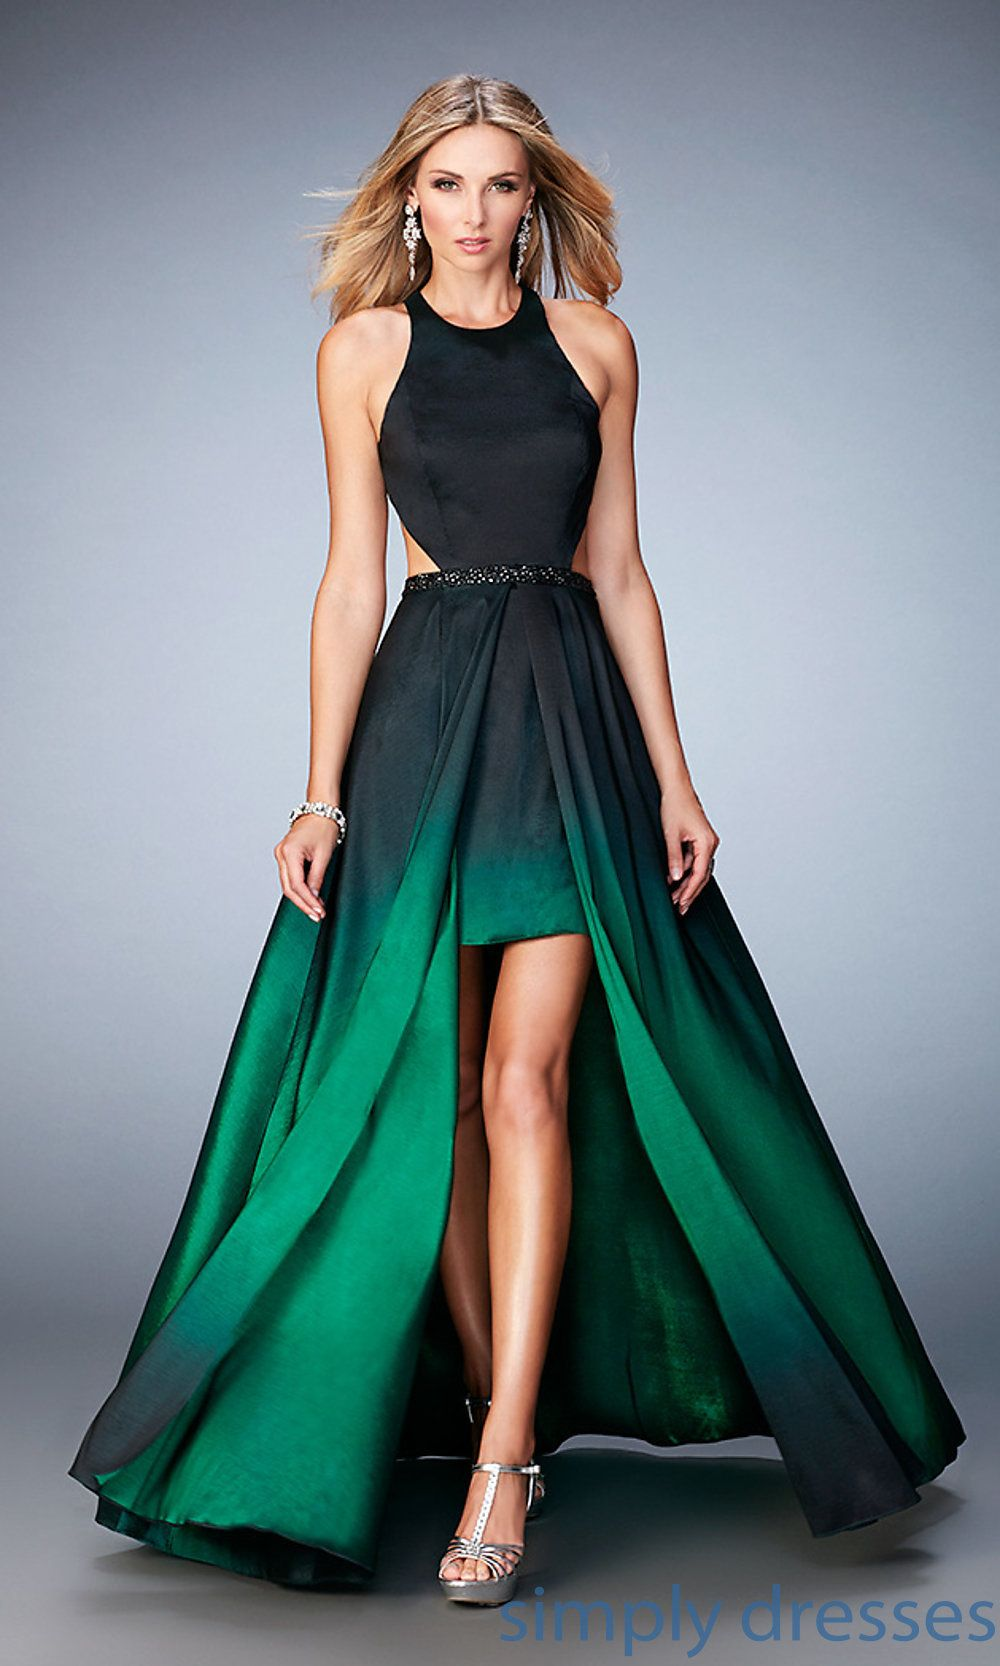 Ombre Dresses Prom Low High 0